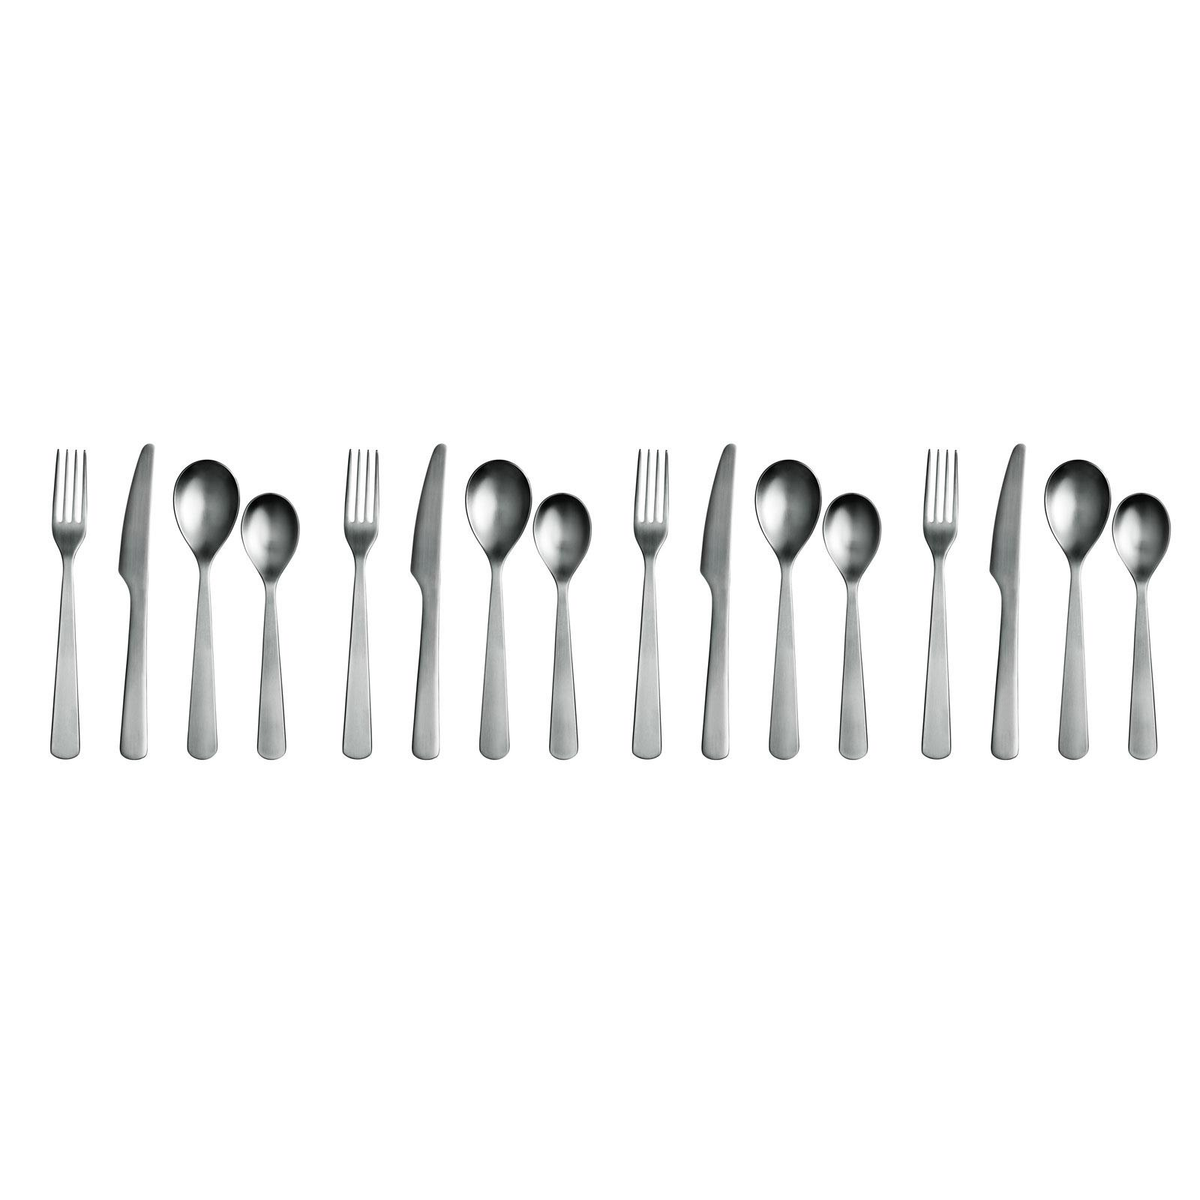 Cutlery Gift Box - 16 pack Steel